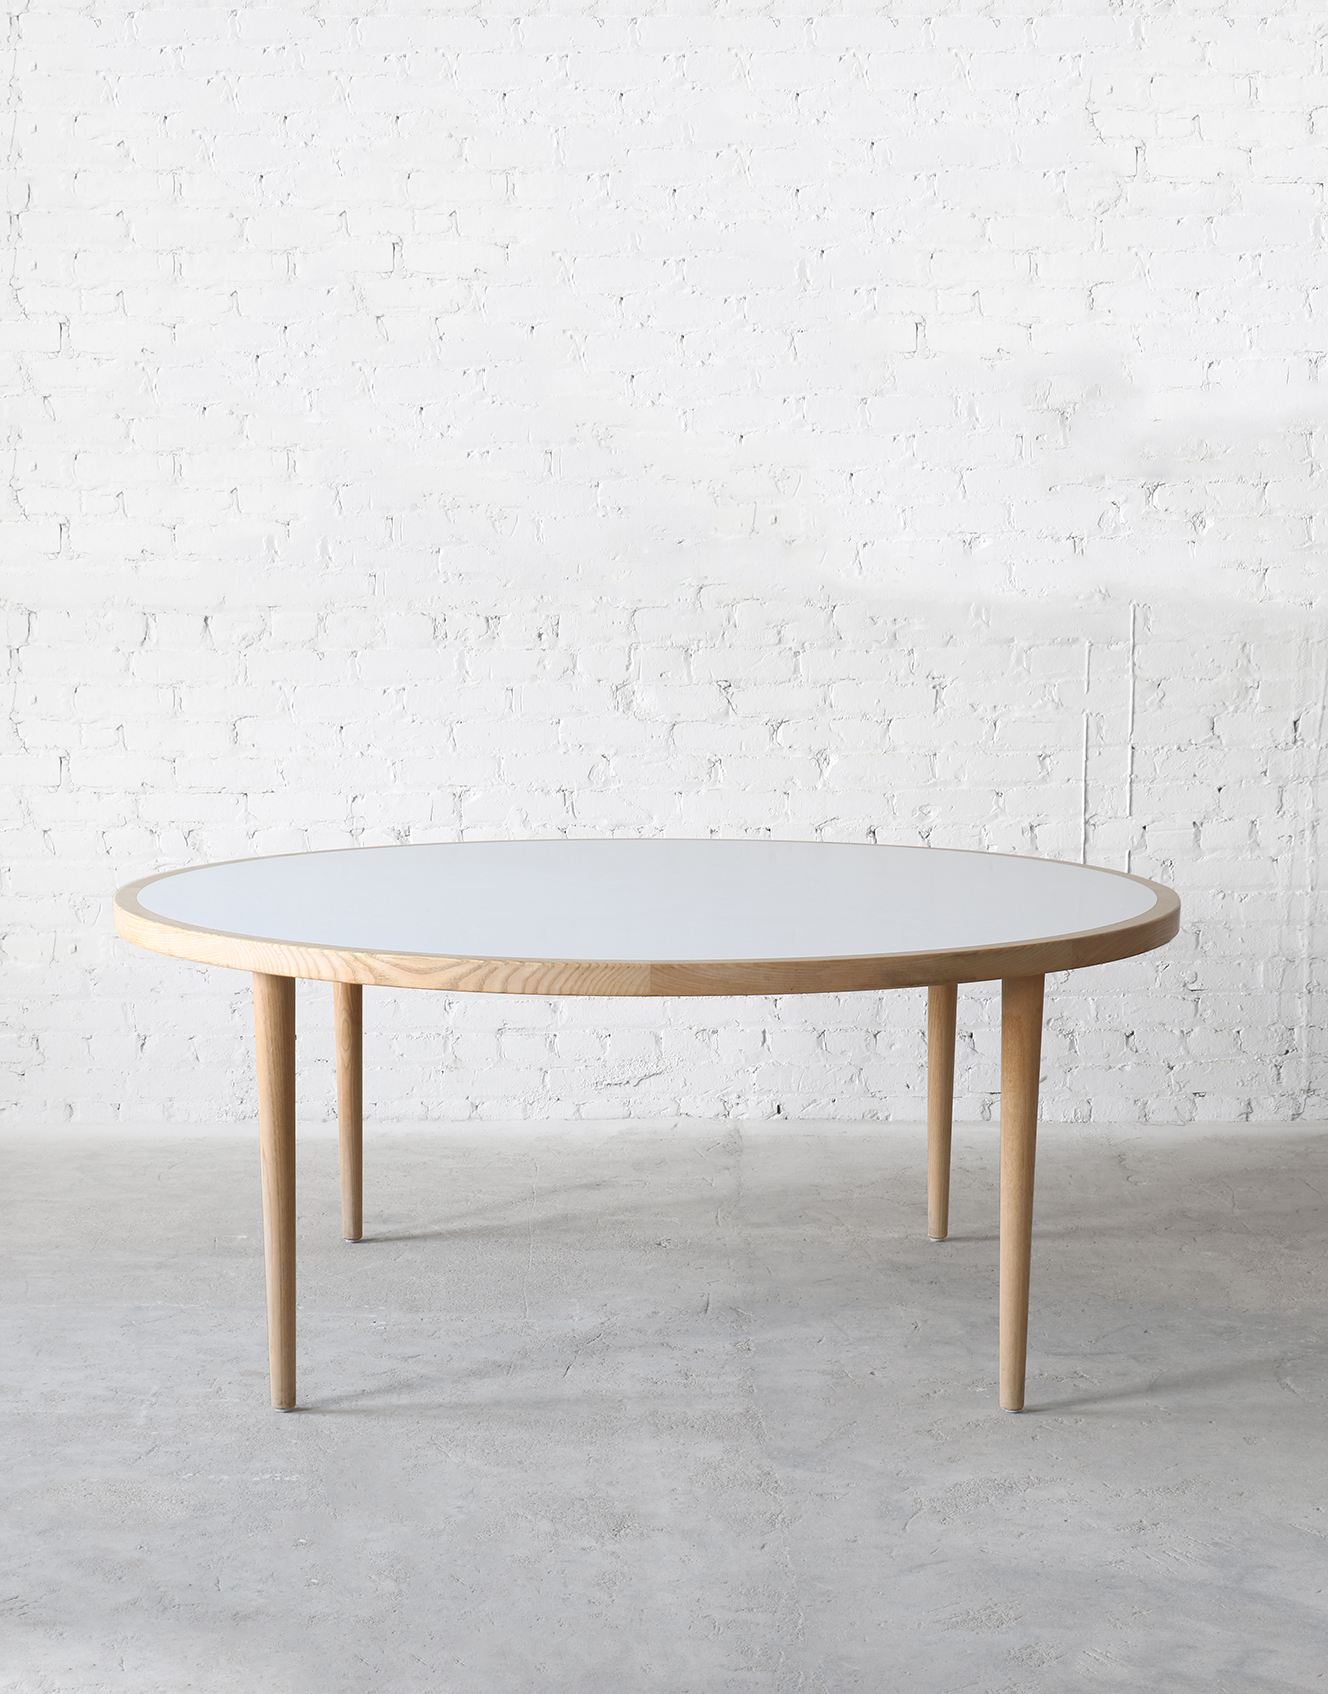 PP Møbler Ash / Laminate Round Dining Table